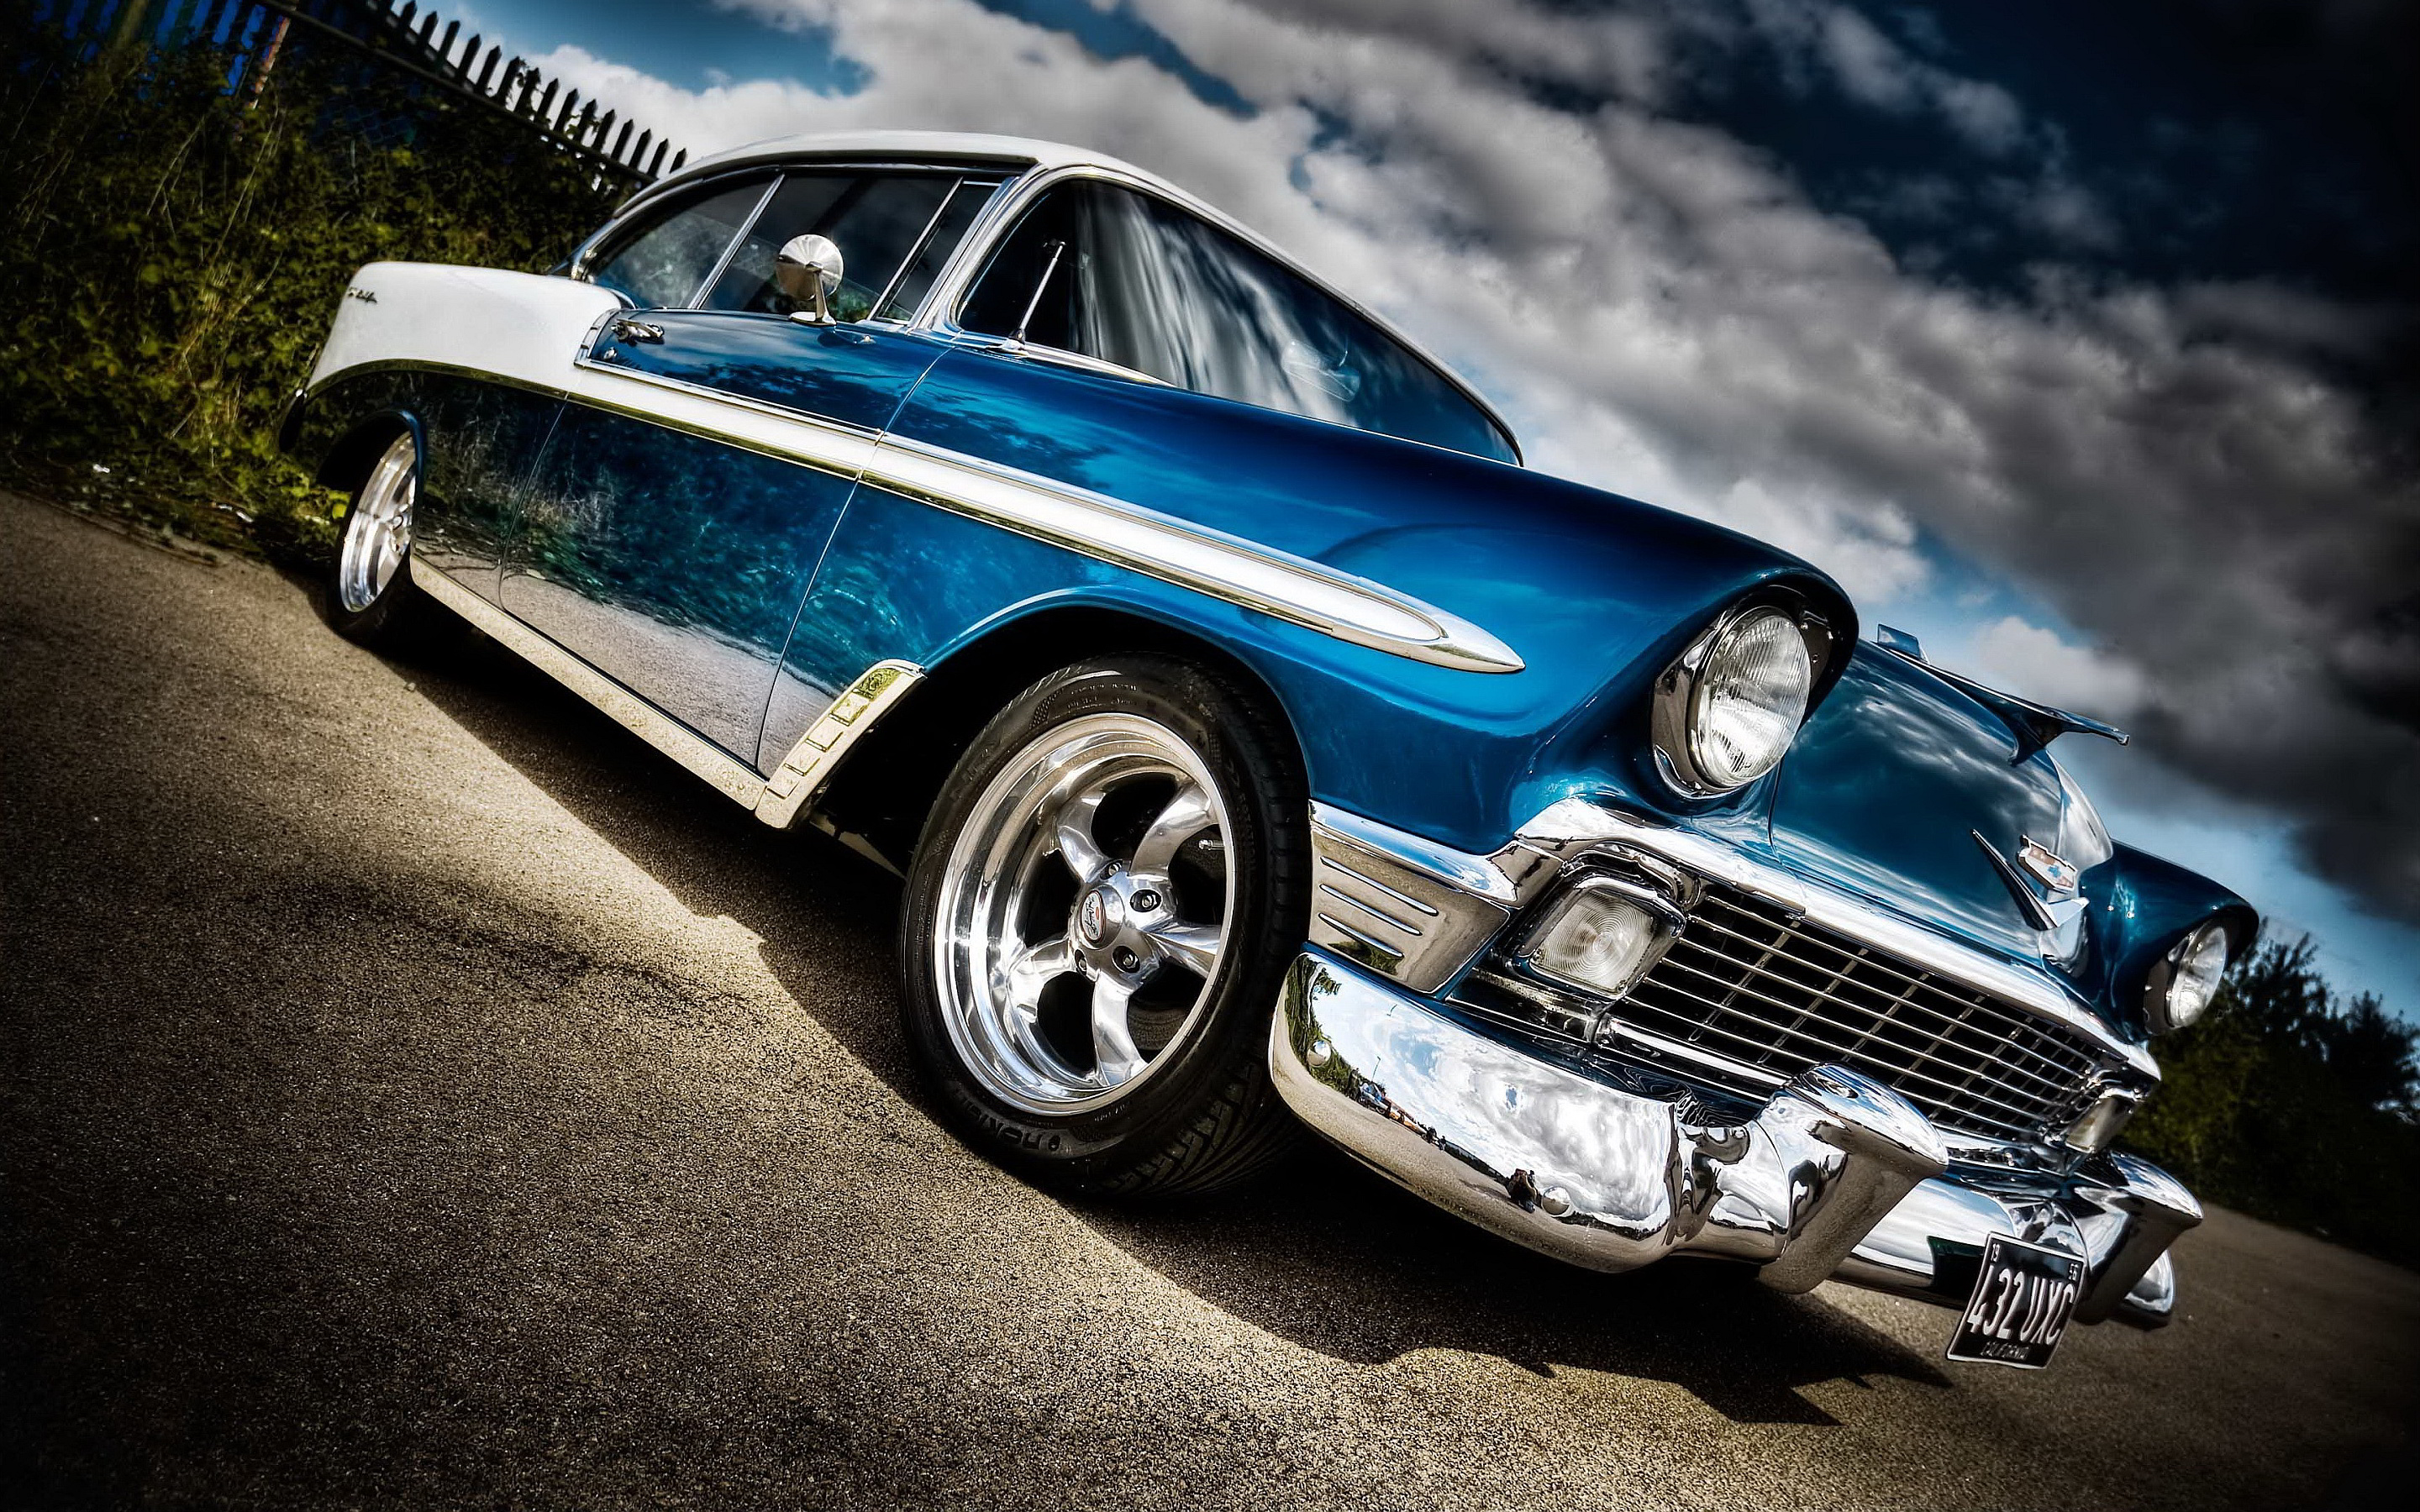 Chevrolet Bel Air #10